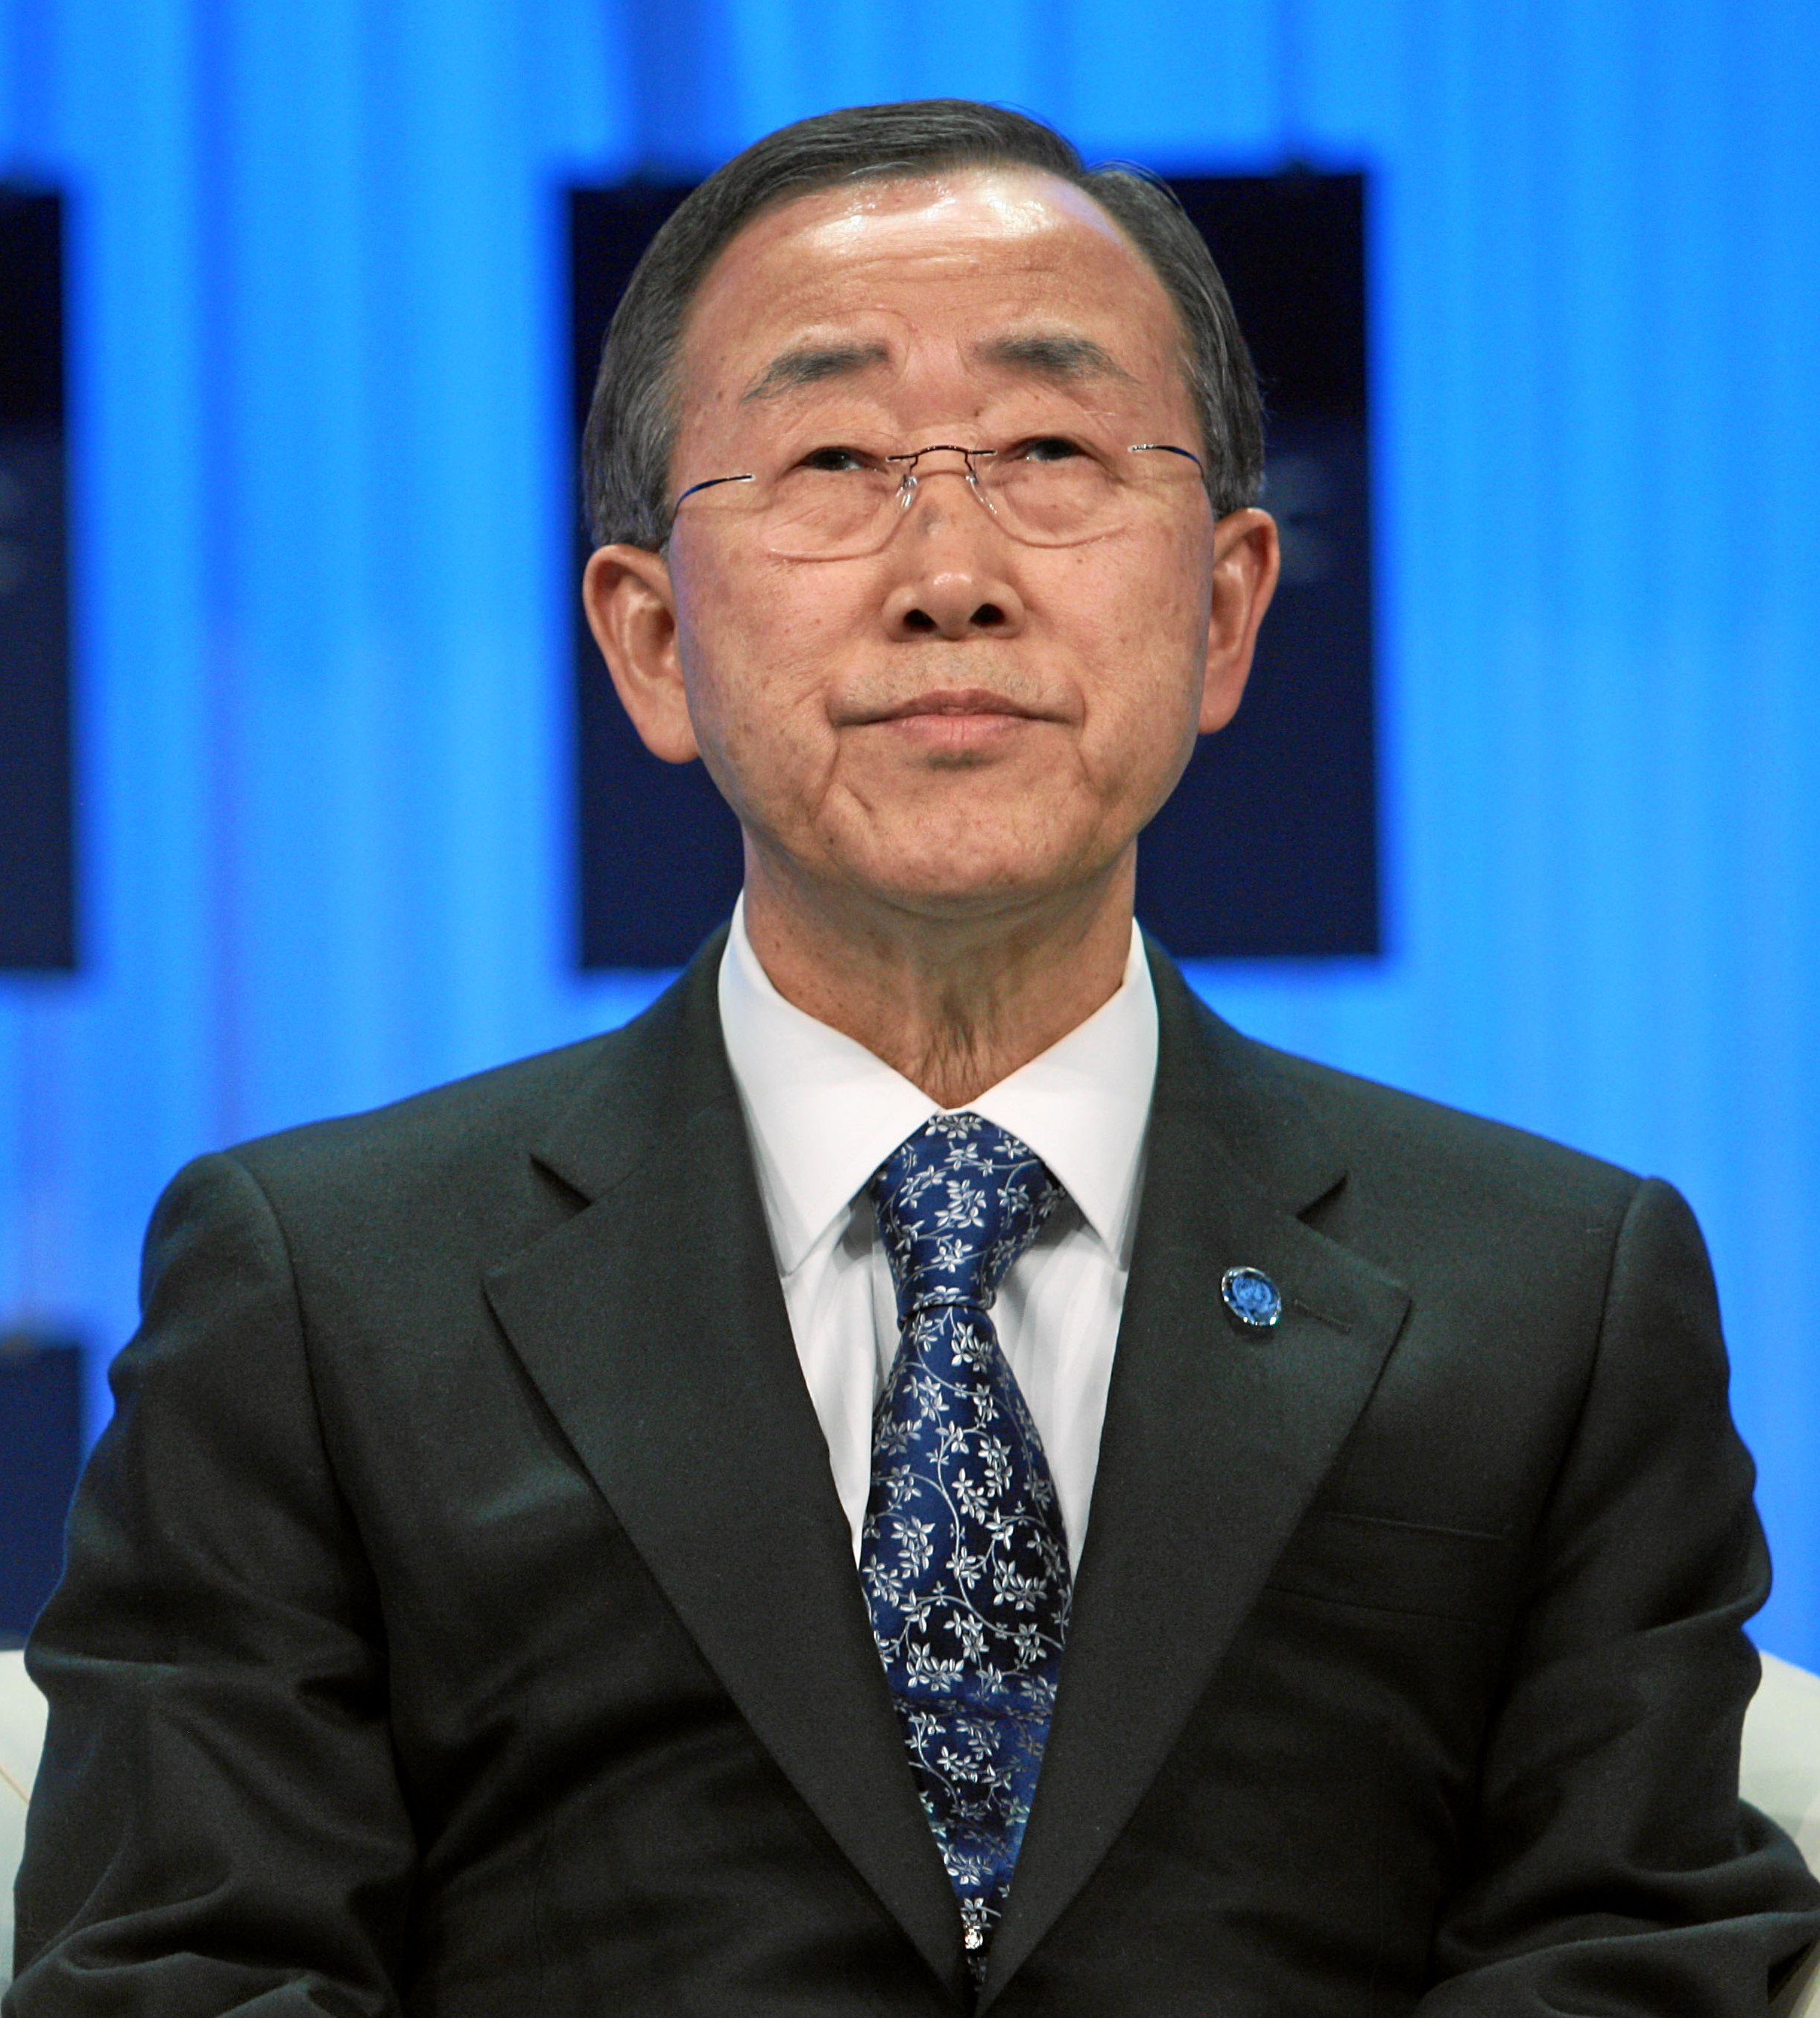 The 73-year old son of father (?) and mother(?), 160 cm tall Ban Ki-moon in 2017 photo